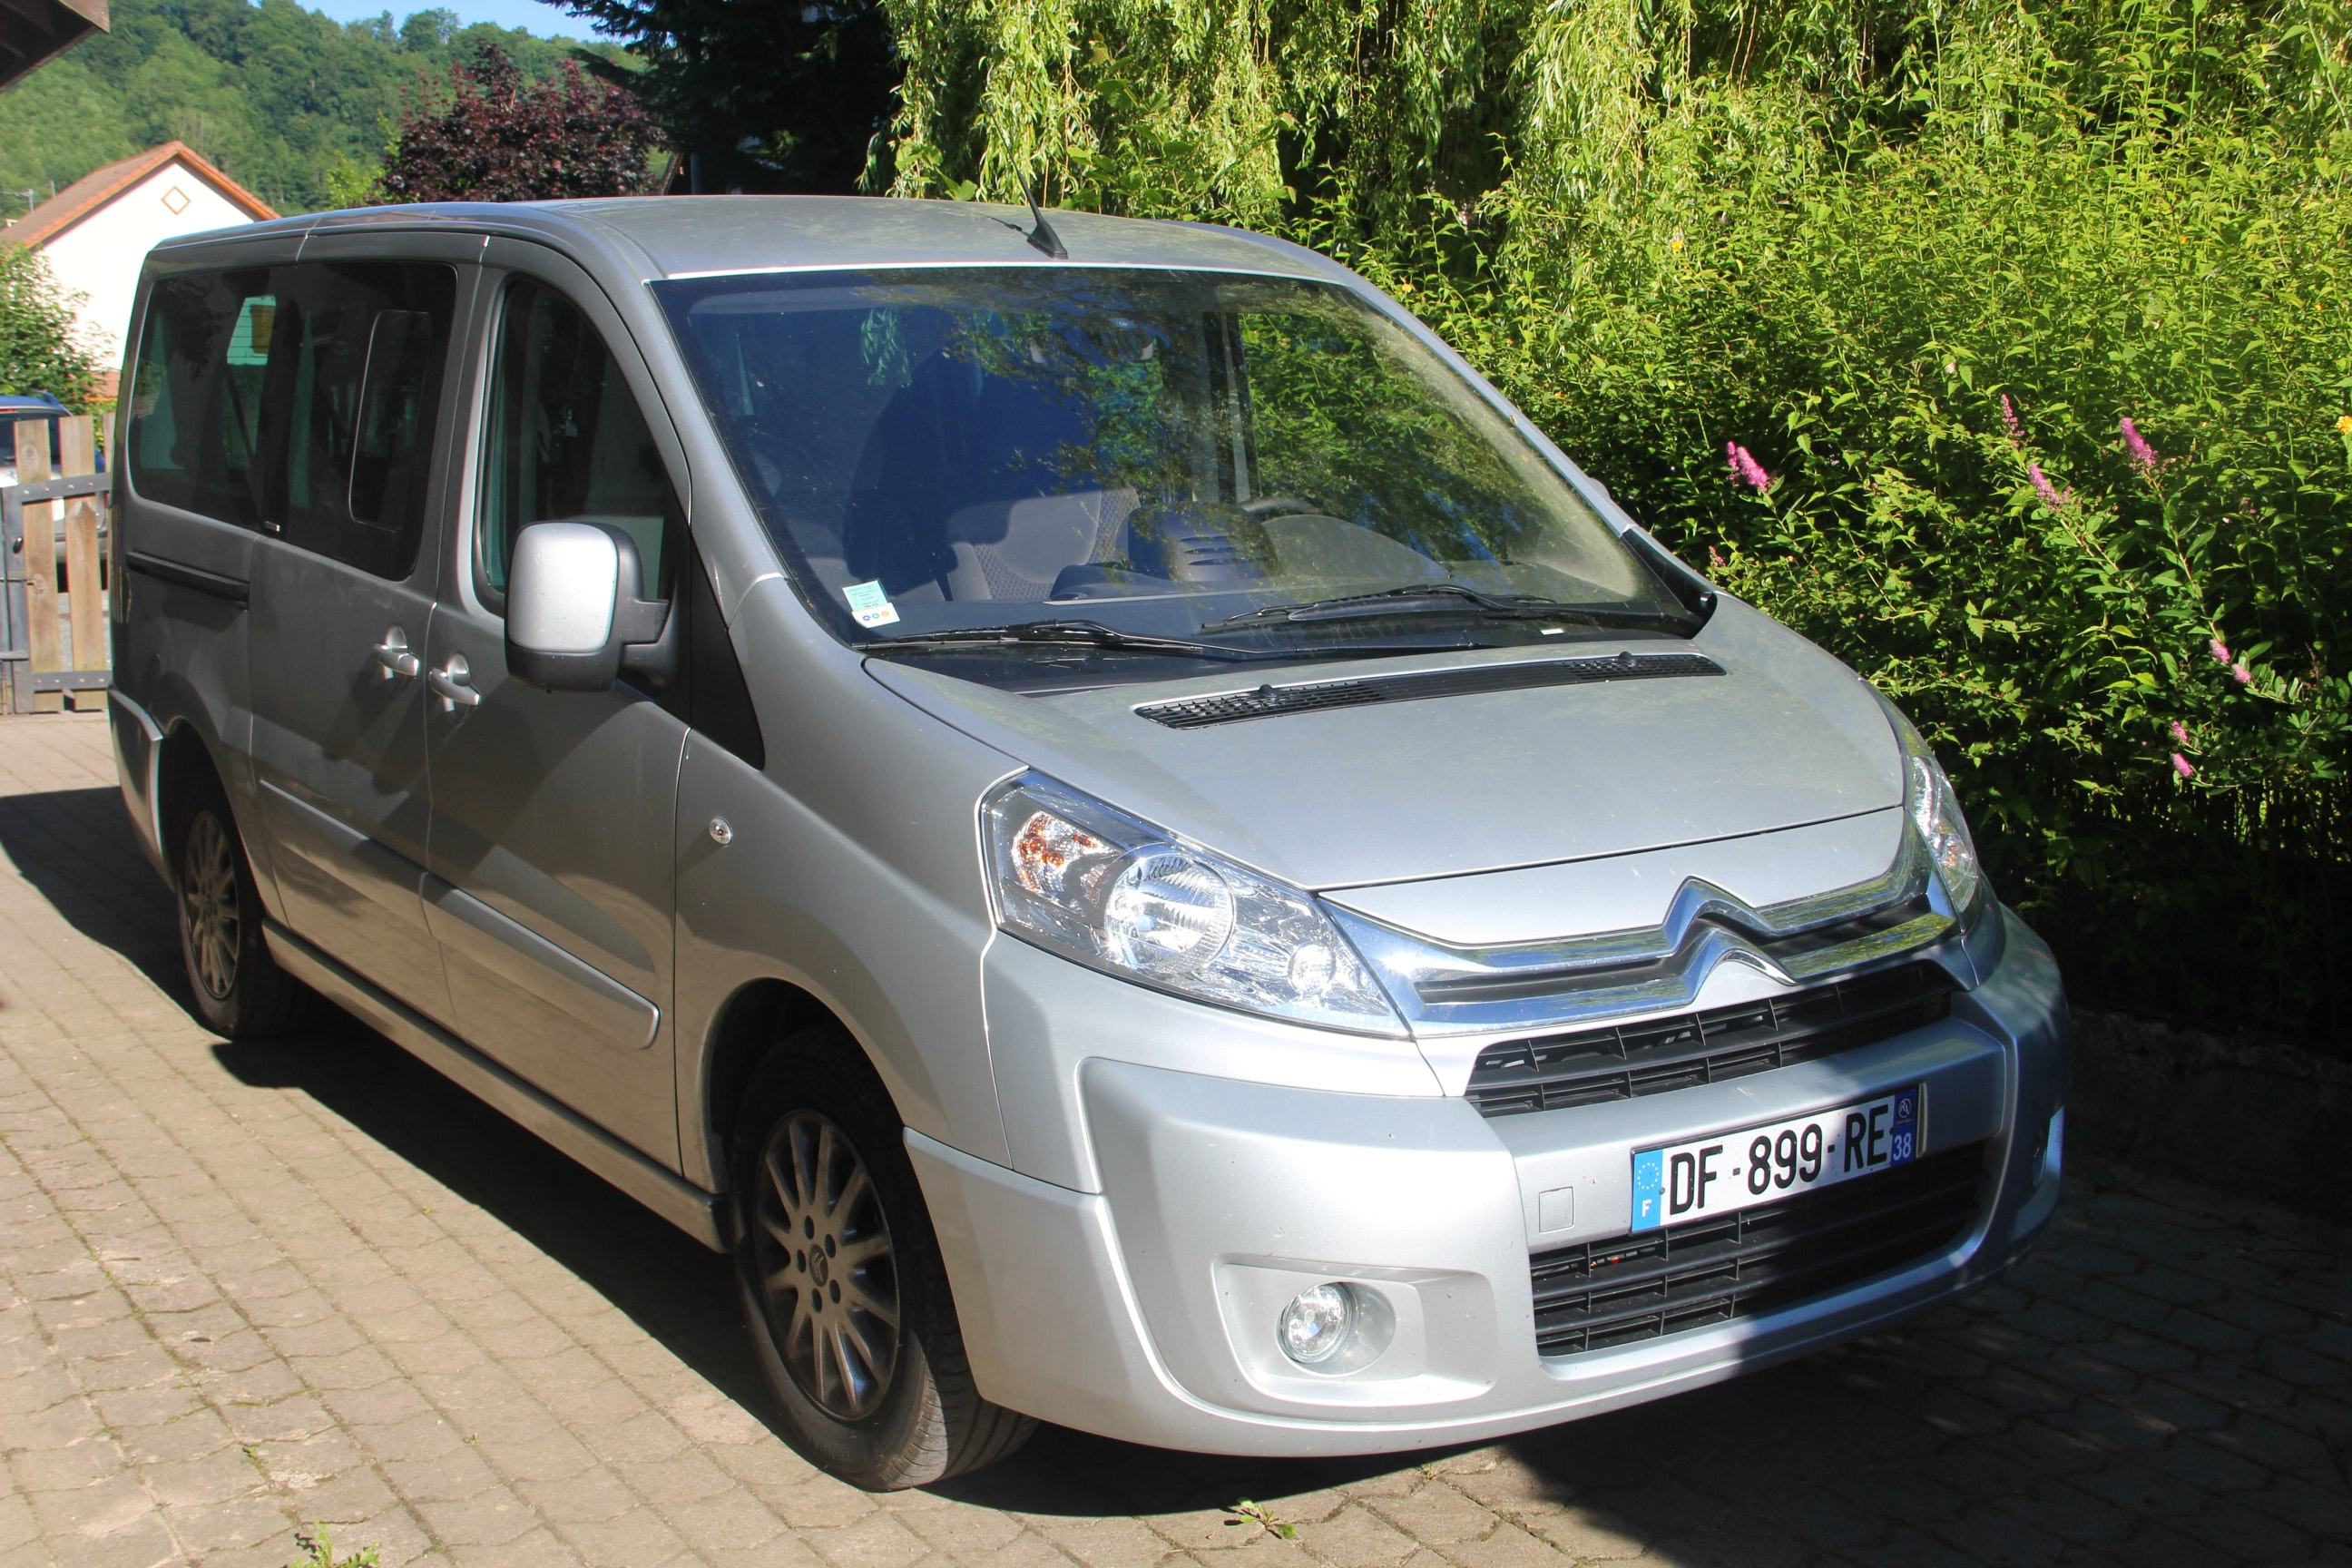 CITROEN JUMPY EXCLUSIVE , 2014, Diesel, 9 places et plus